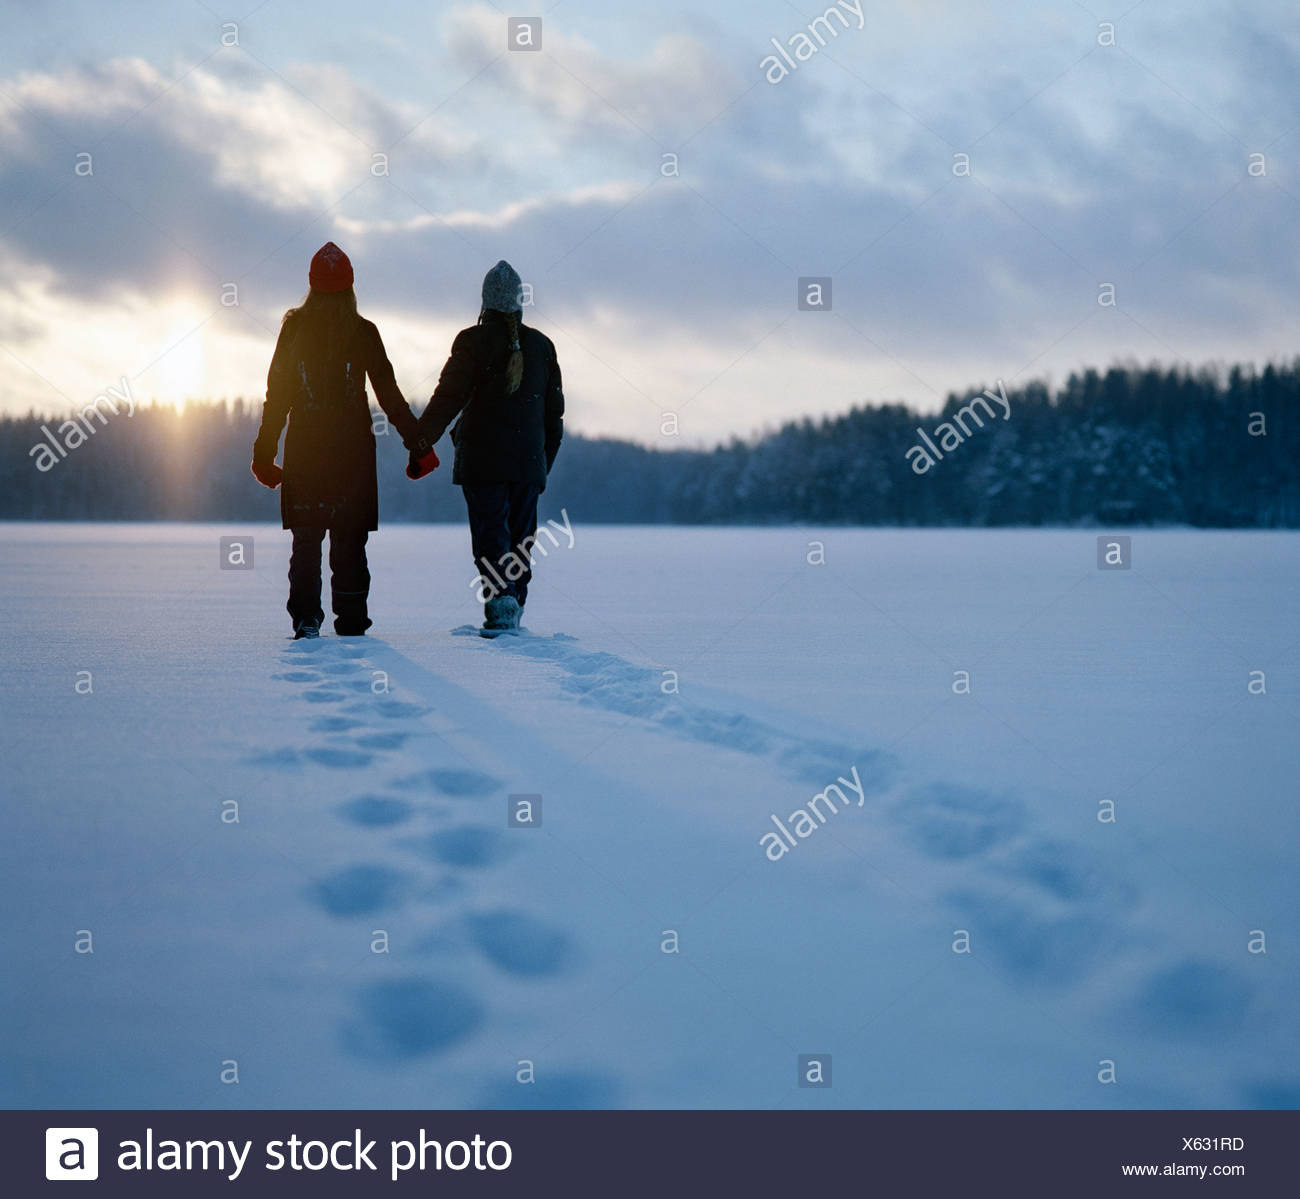 Silhouette of two young women standing in snow Finland - Stock Image